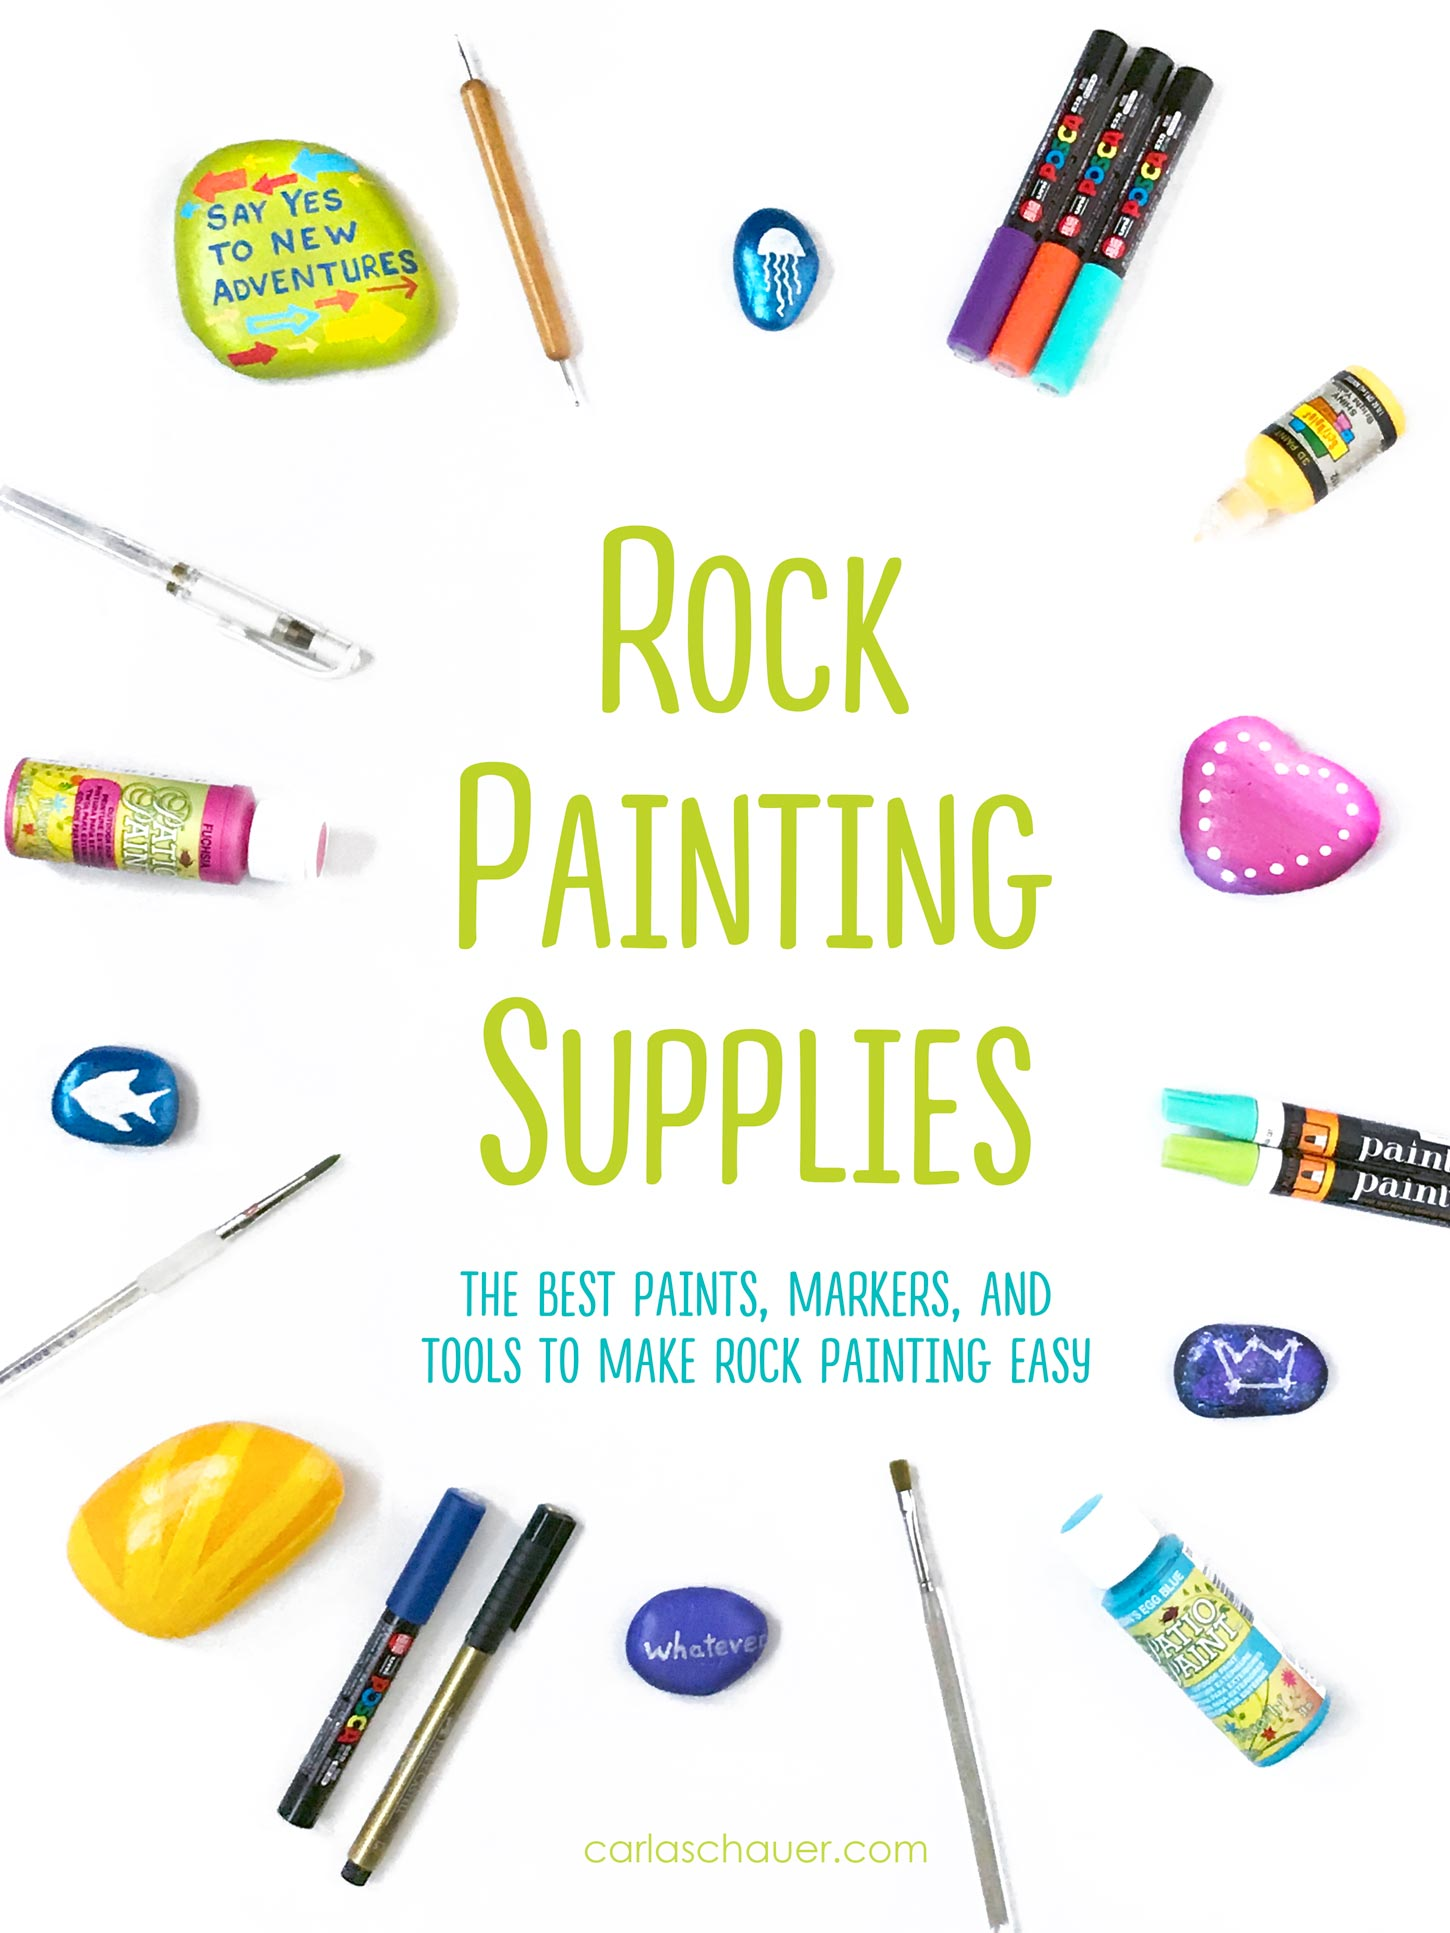 The ultimate guide to the best supplies for painting rocks. Paints, pens, tools, sealers, and more. | Click for the entire rock painting supplies guide at carlaschauer.com #easypaintedrocks #paintedrockideas #paintedrocks #rockpainting #decoratedrocks #quickcrafts #teencrafts #tweencrafts #rockpaintingsupplies #paintingsupplies #craftsupplies